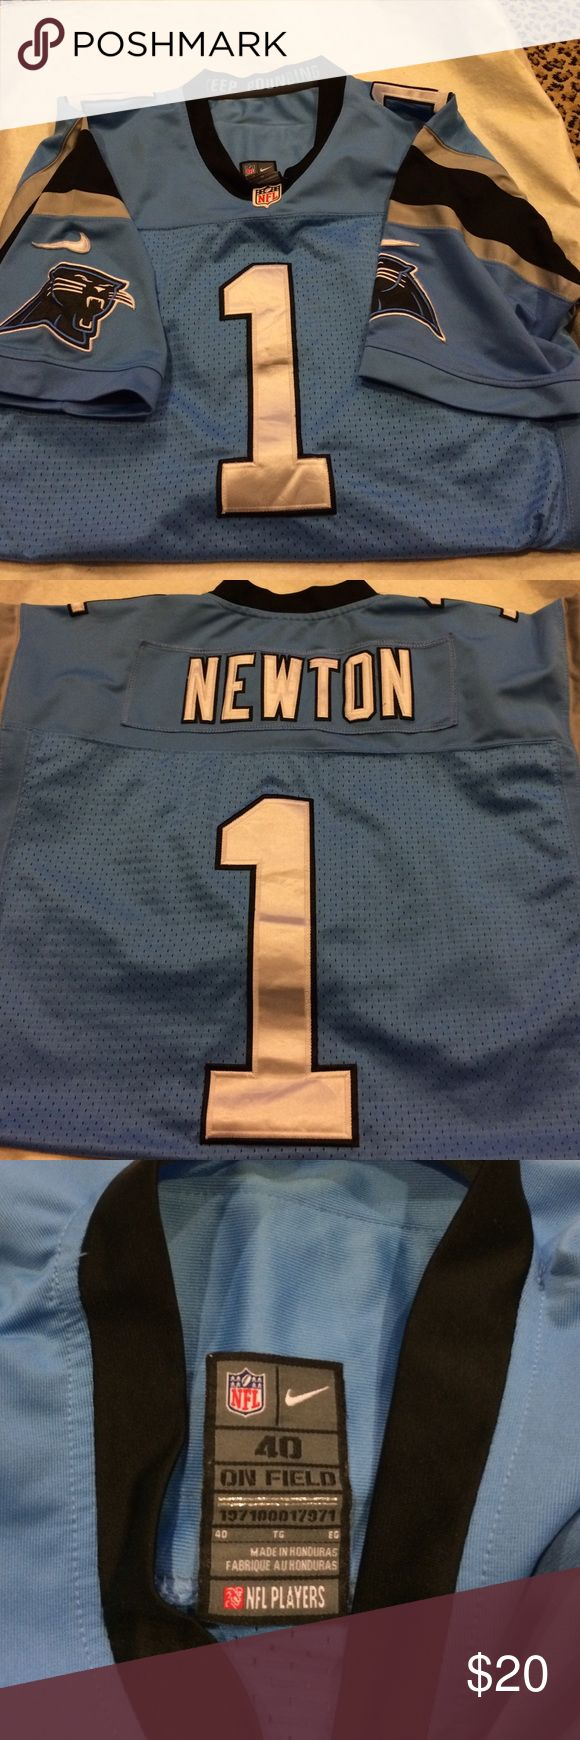 """Nike"" Like Cam Newton Panthers Jersey. Men's 40. ""Nike"" Like Men's Cam Newton Panthers Jersey. Men's Size 40. Gently used very good condition. Some wrinkles around the sewn on numbers. All sewn on letters and numbers. Smoke Free/Pet Free Home. Shirts"